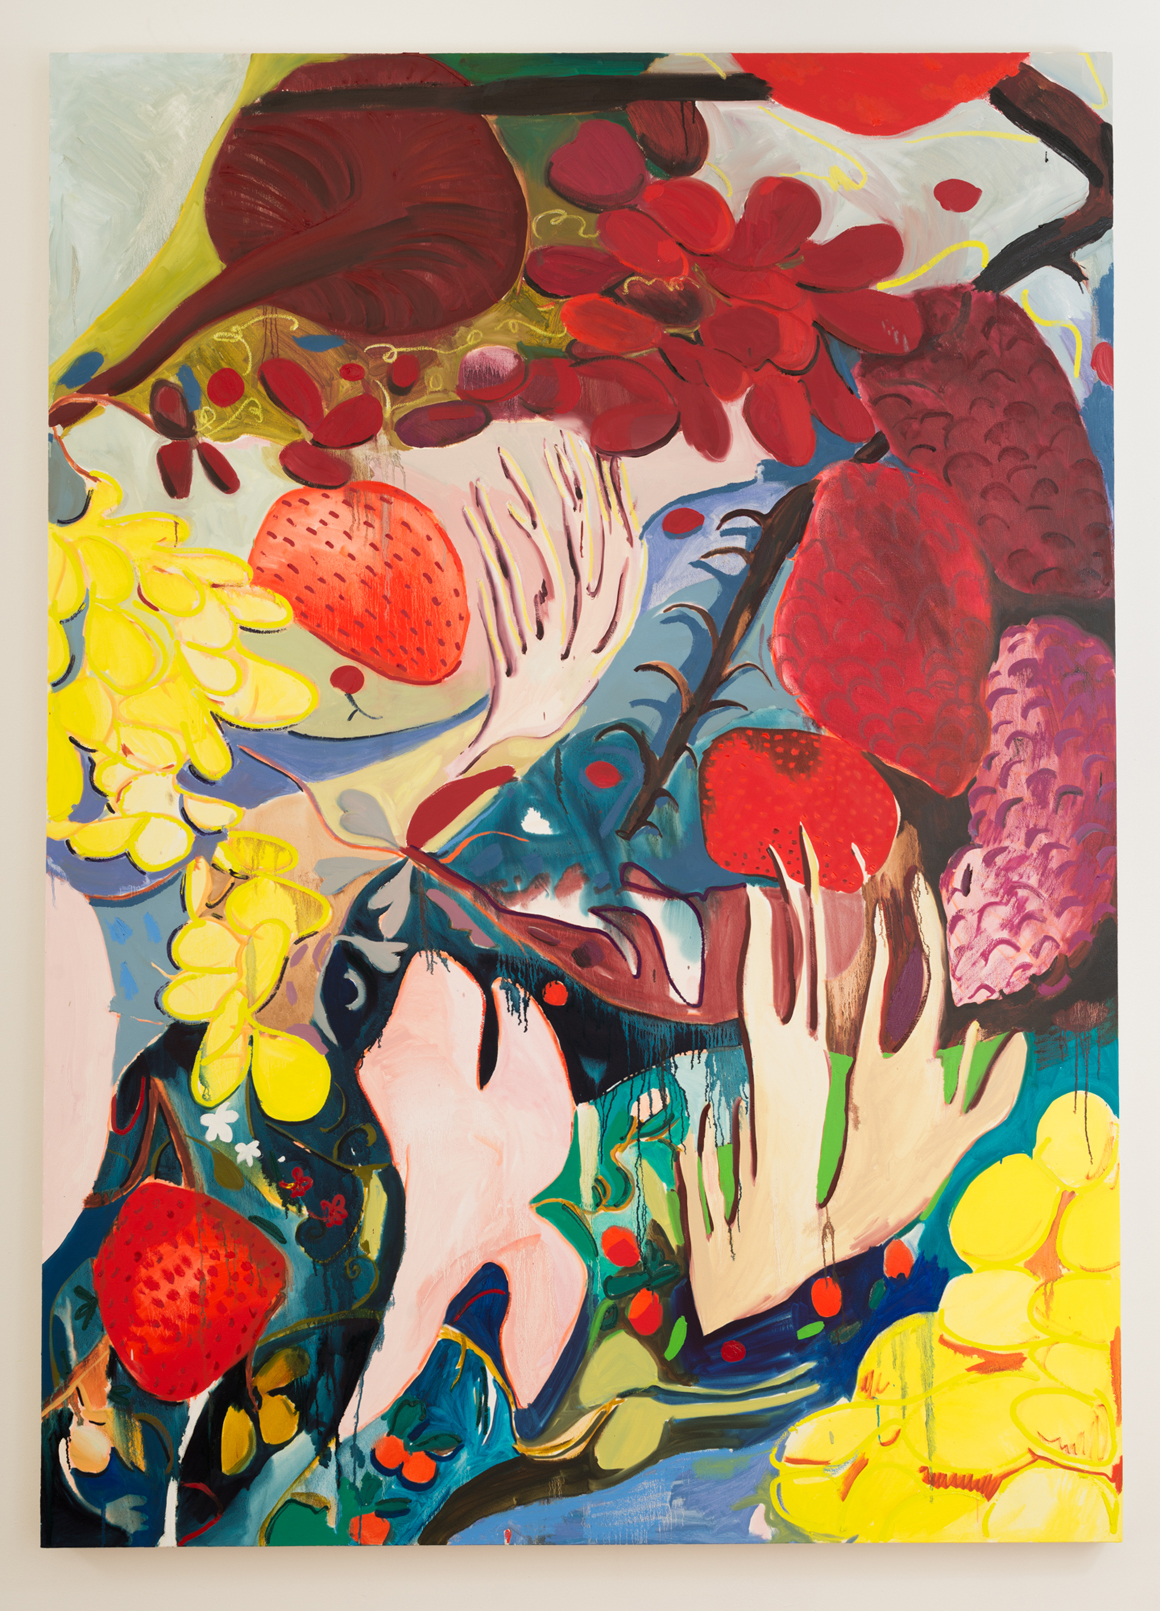 "<p><span class=""name"">Jasmine Little</span><br><em>Fruit Still Life</em>92 x 66 in (233.7 x 167.6 cm)<br>2018<br><a class='inquire' href='mailto:info@gildargallery.com?subject=Artwork Inquiry JLIT0008&body=I am interested in finding out more about Fruit Still Life by Jasmine Little'>Inquire</a></p>"